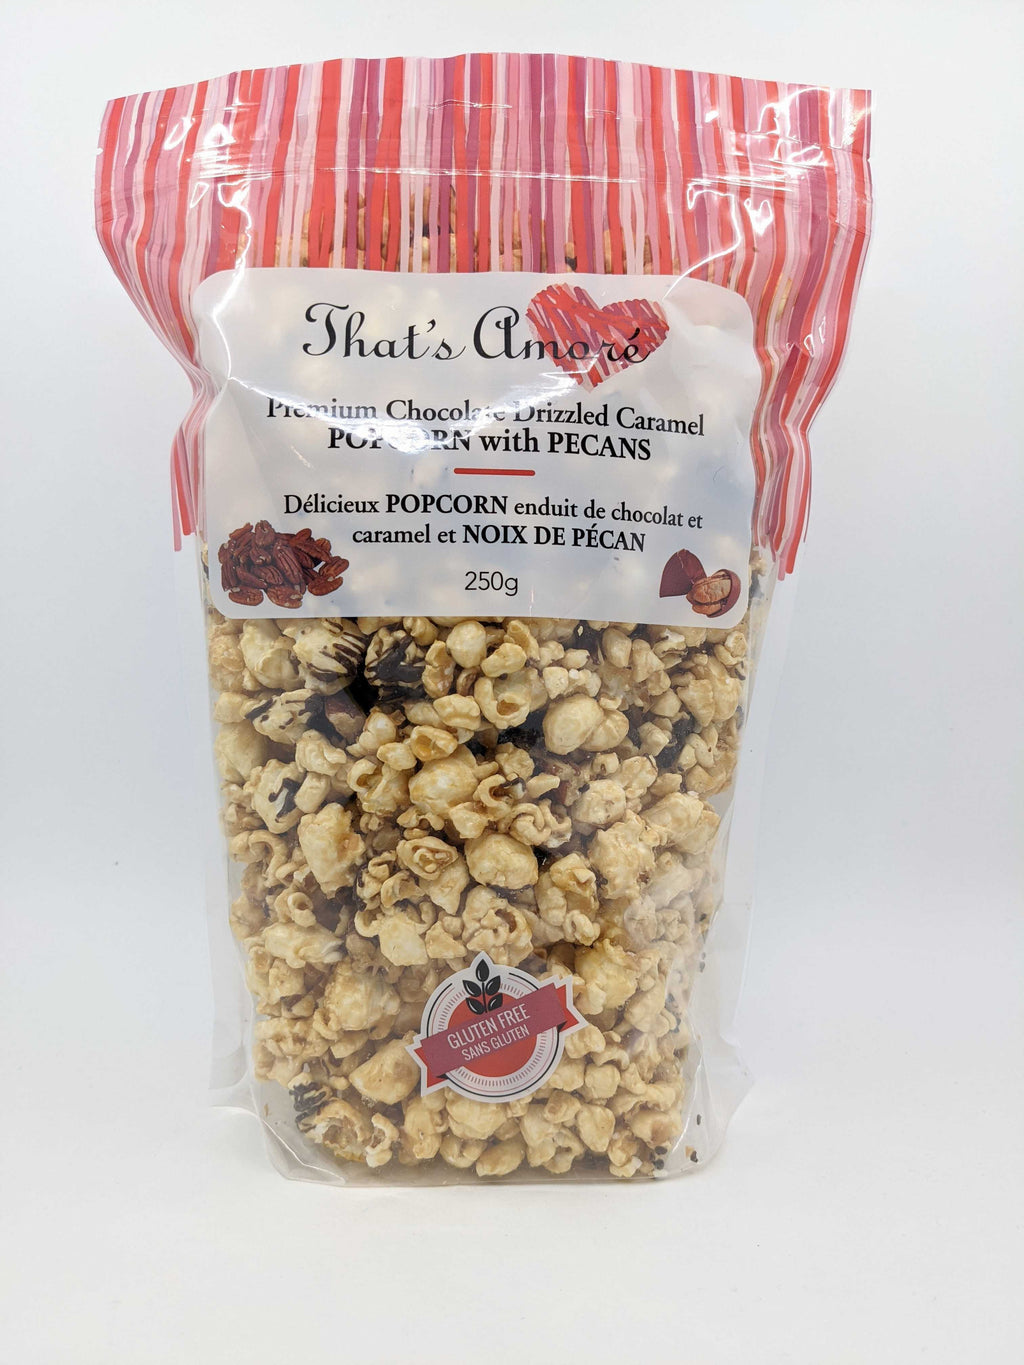 Bag of That's Amoré Pecan, Caramel, chocolate Drizzled Popcorn